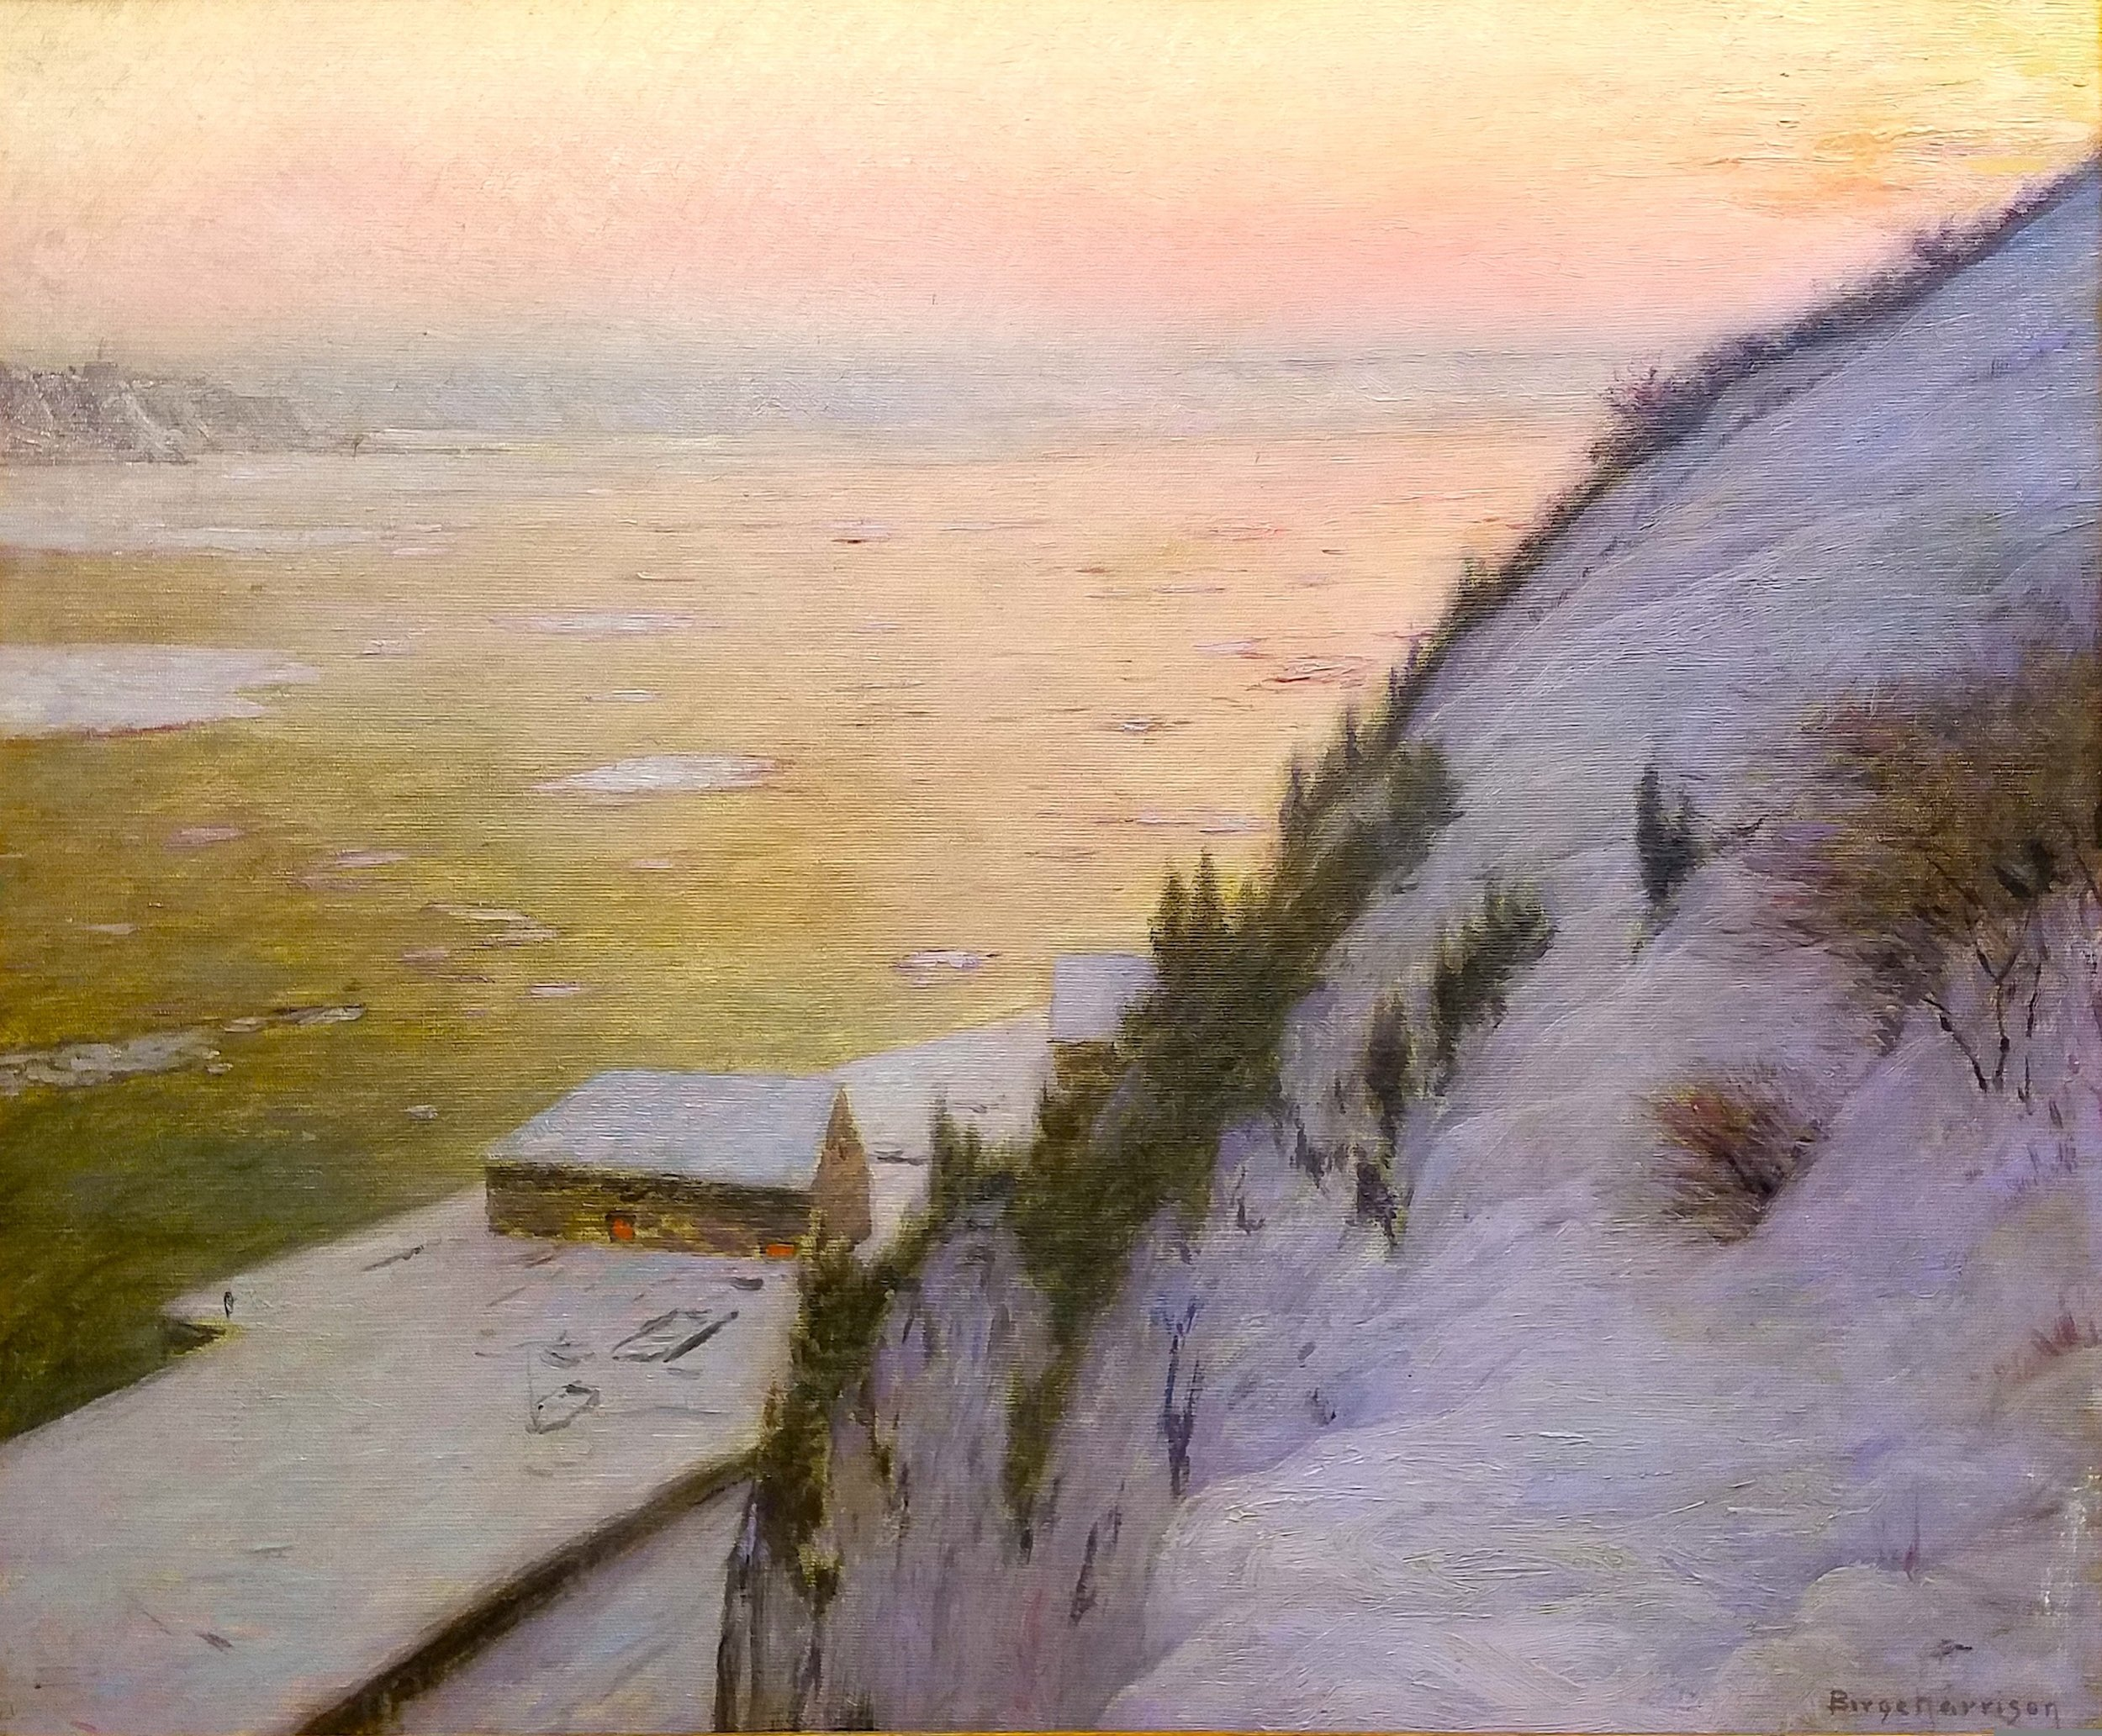 Birge Harrison,  St. Lawrence River Sunset,  no date, oil on canvas, 25 x 39 in. The Historic Woodstock Arts Colony: Arthur A. Anderson Collection. Photo Credit: Eric R. Lapp